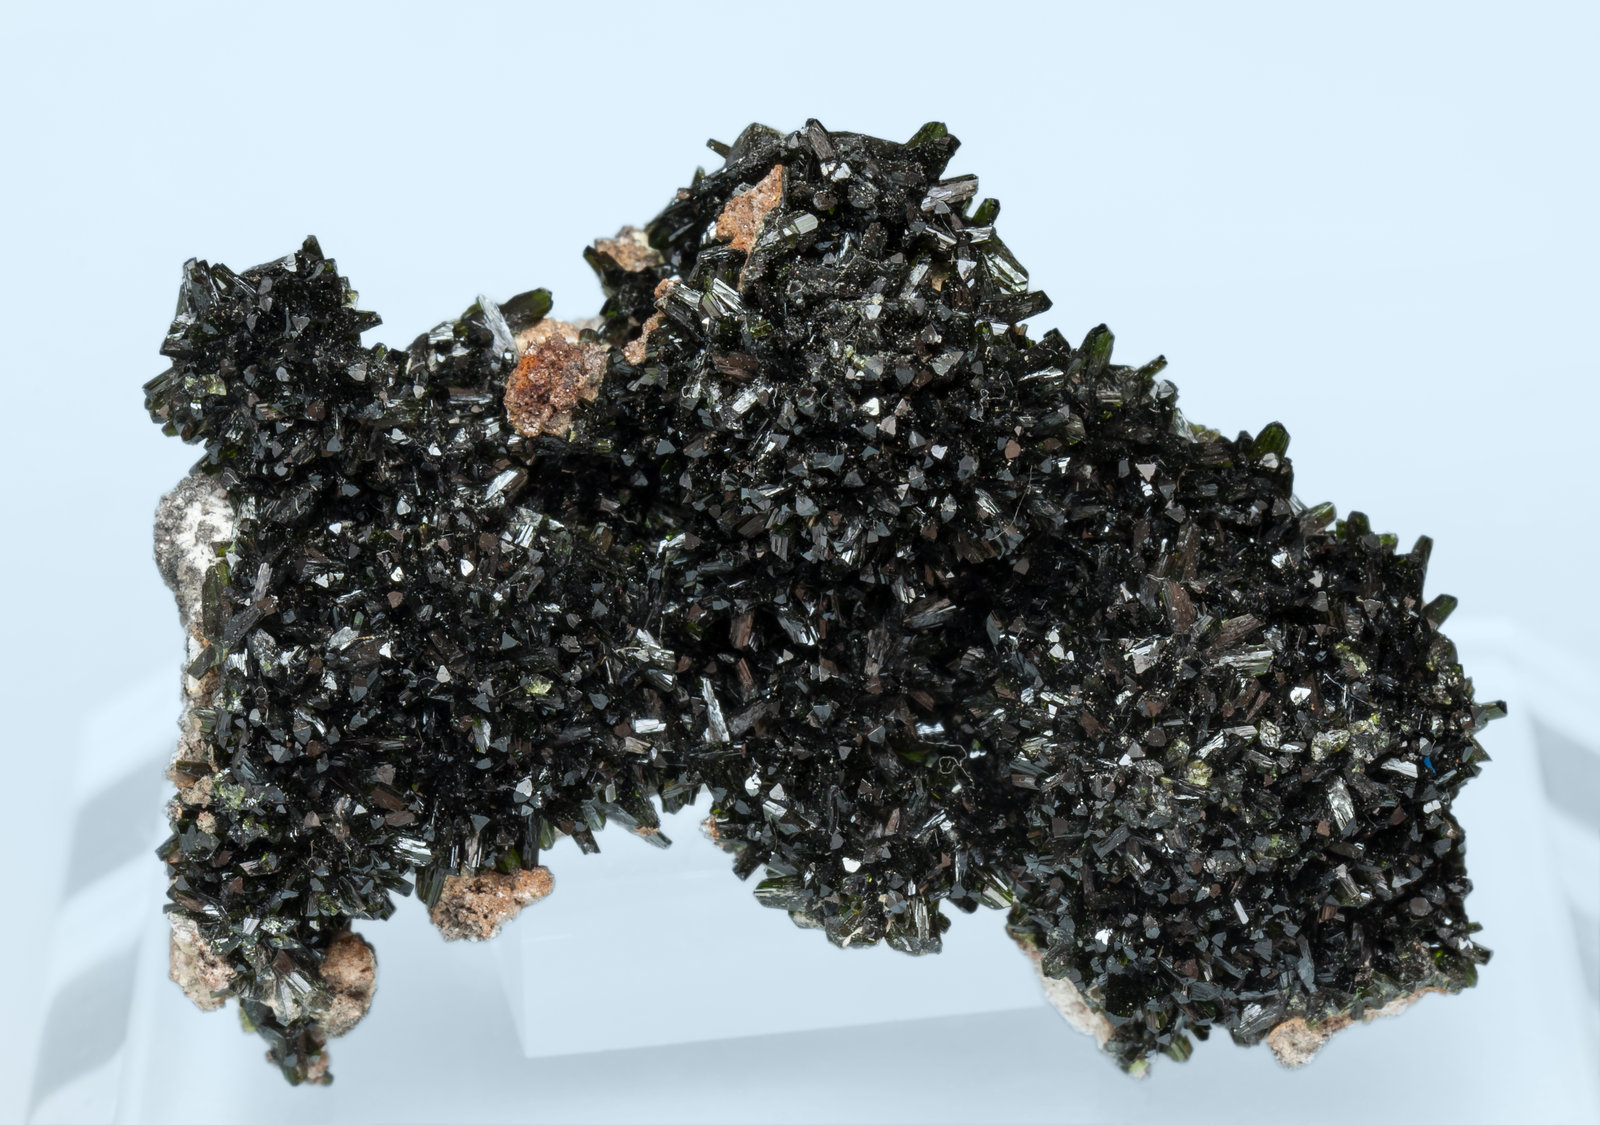 specimens/s_imagesAL2/Olivenite-TT51AL2f.jpg